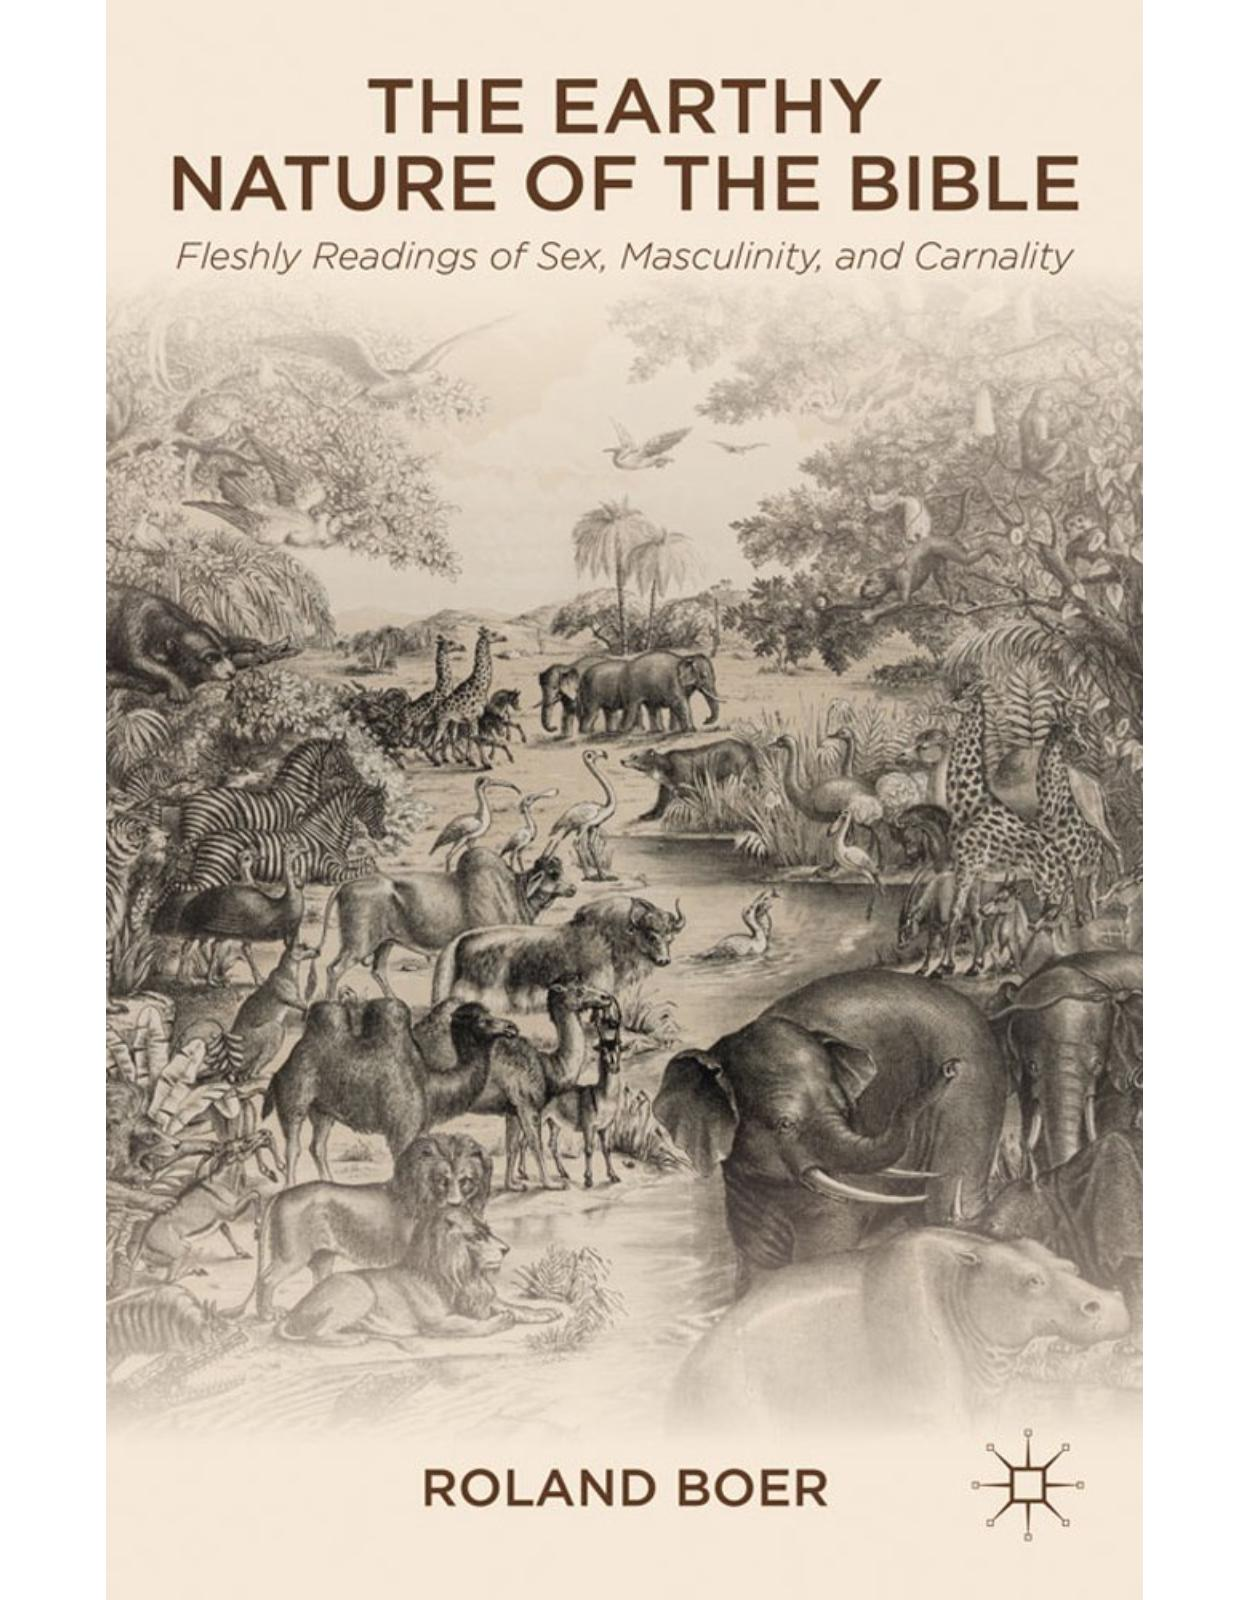 The Earthy Nature of the Bible: Fleshly Readings of Sex, Masculinity, and Carnality